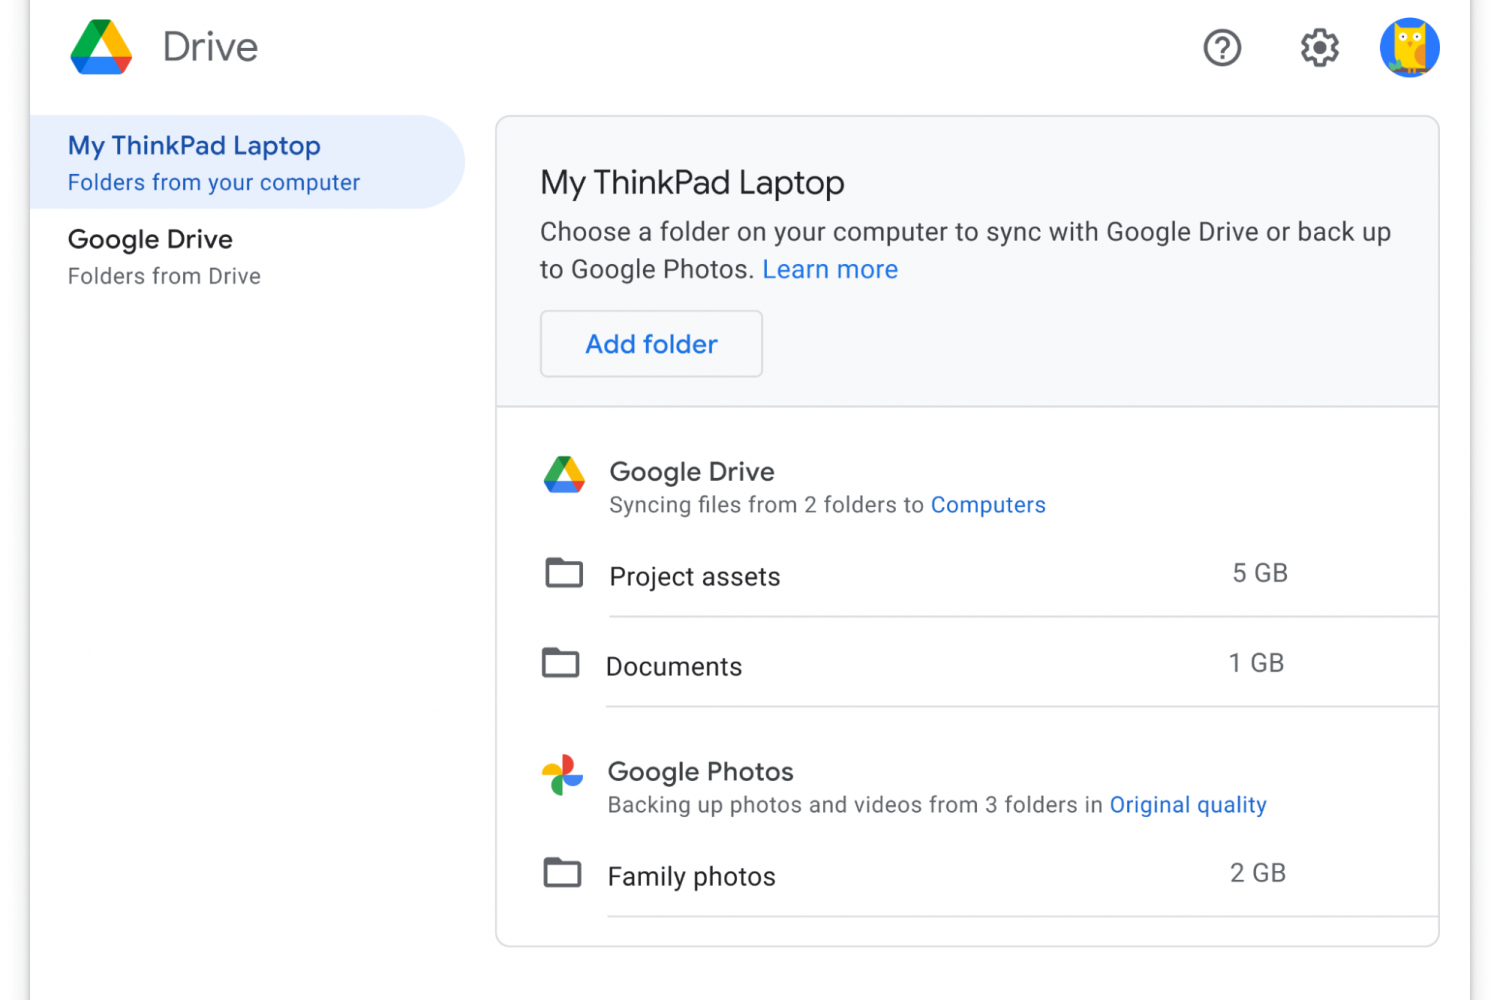 A macOS screenshot showing the Preferences window in the Google Drive desktop client for Mac